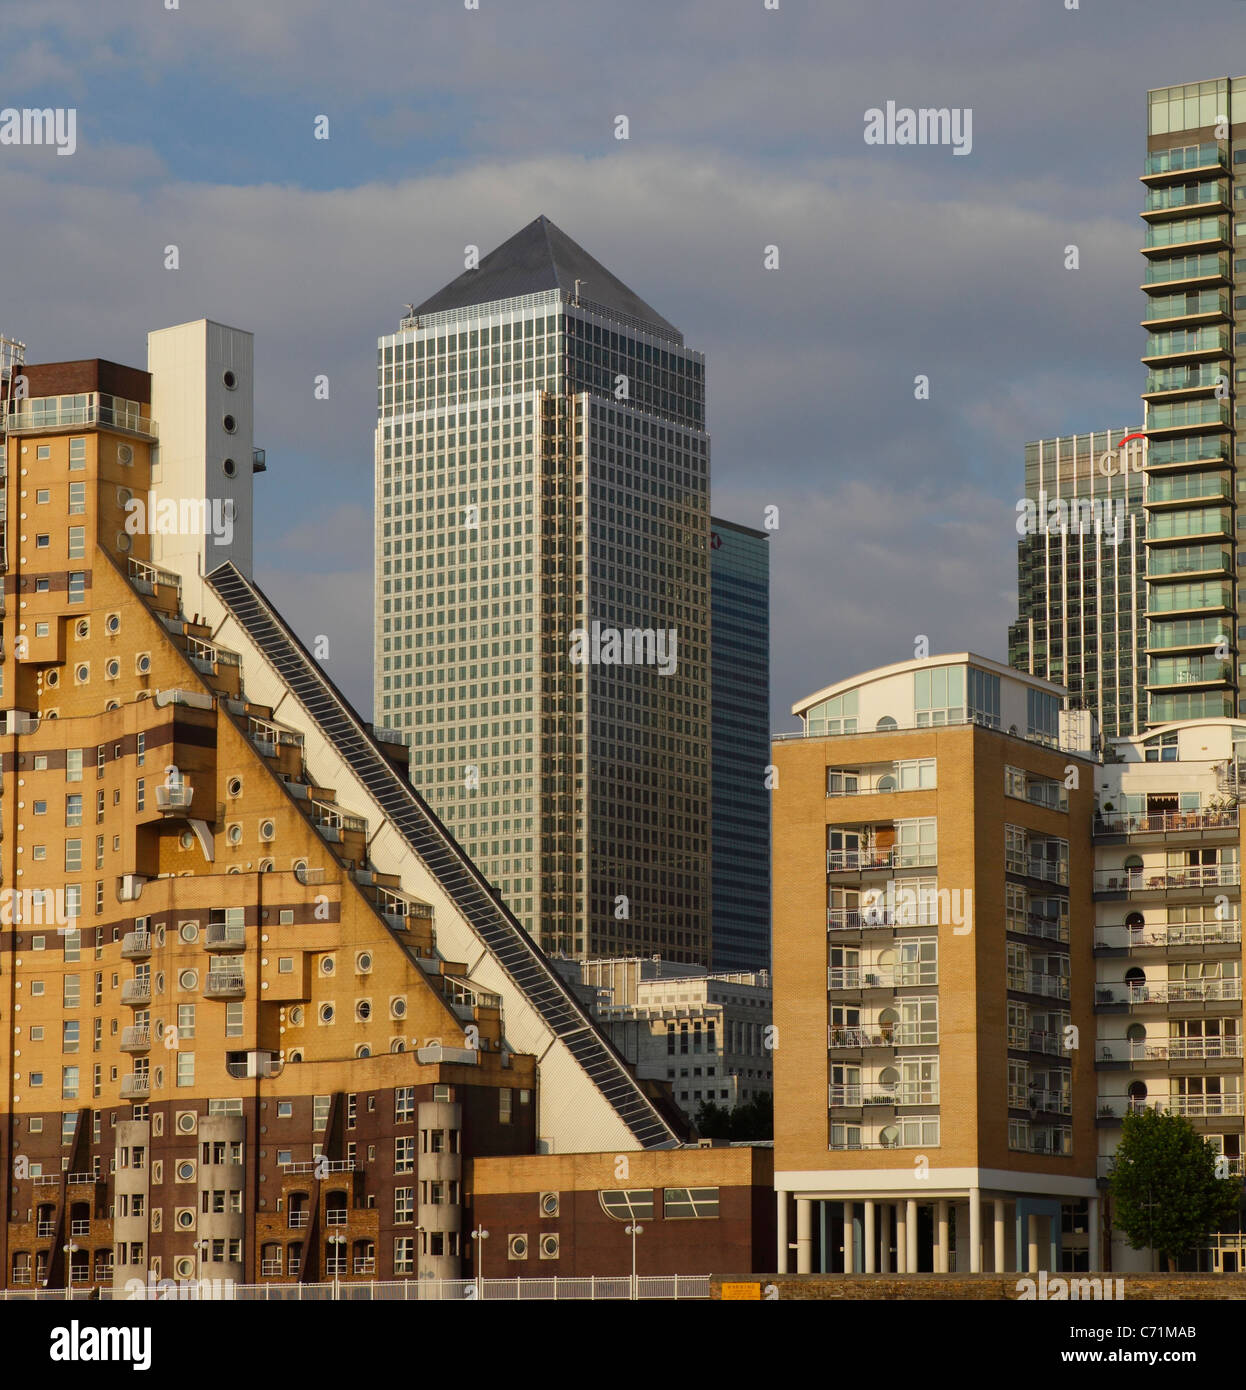 City buildings Canary Wharf, Isle of Dogs, Docklands, East London, UK, GB - Stock Image